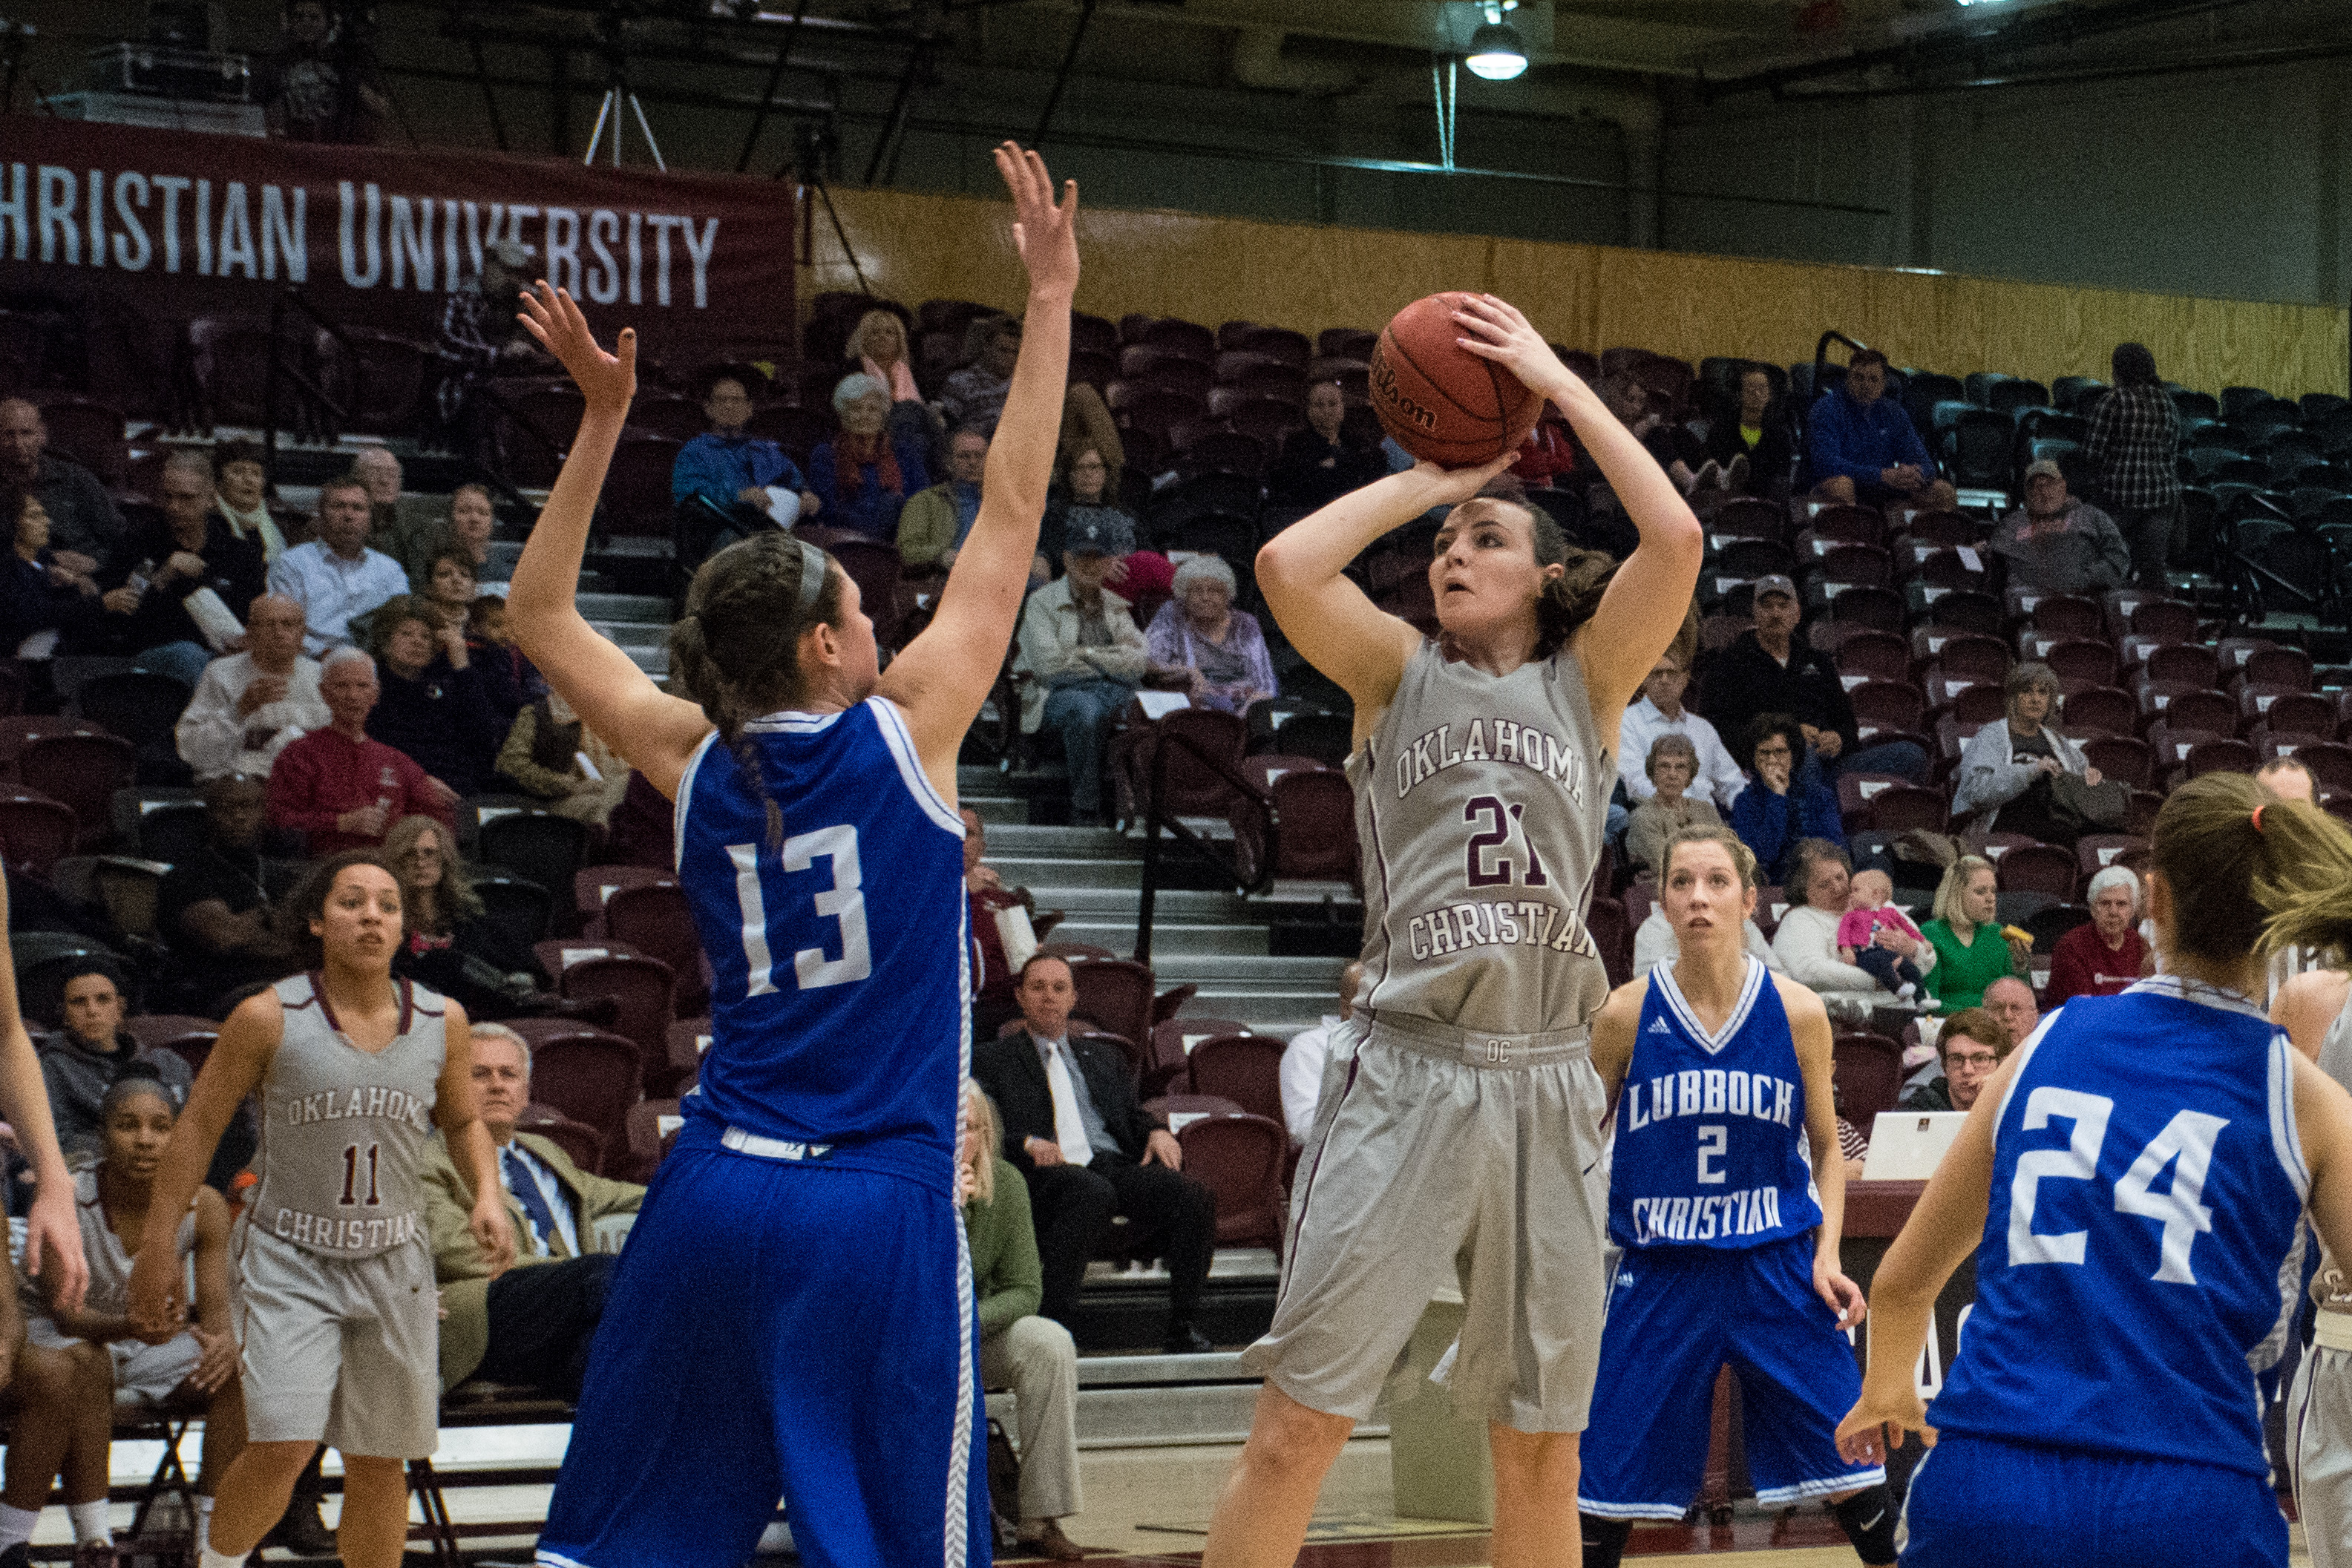 McKenzie Stanford attempt a shot against the Lady Chaps on Feb. 4. Photo by Abby Bellow.